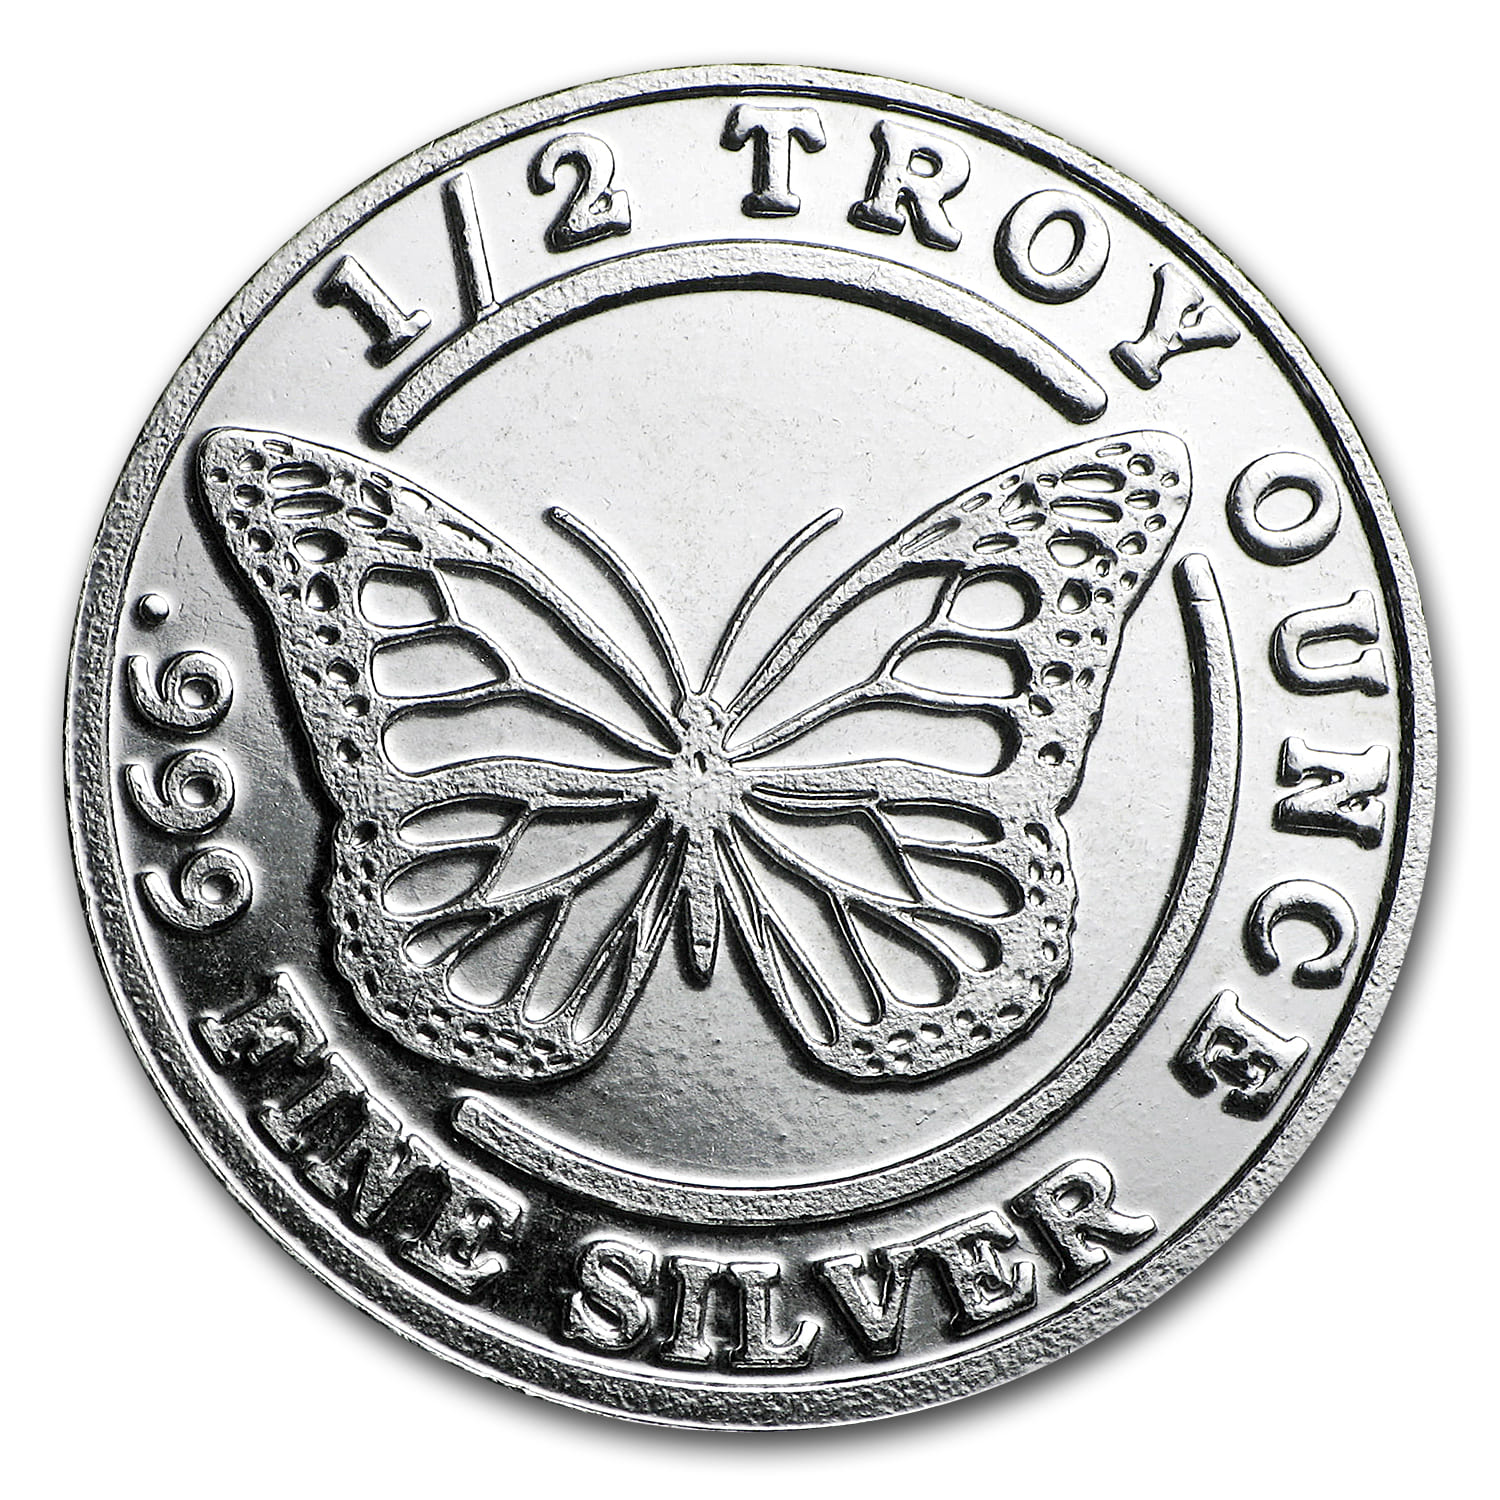 1/2 oz Silver Round - Monarch Precious Metals (Monarch Butterfly)